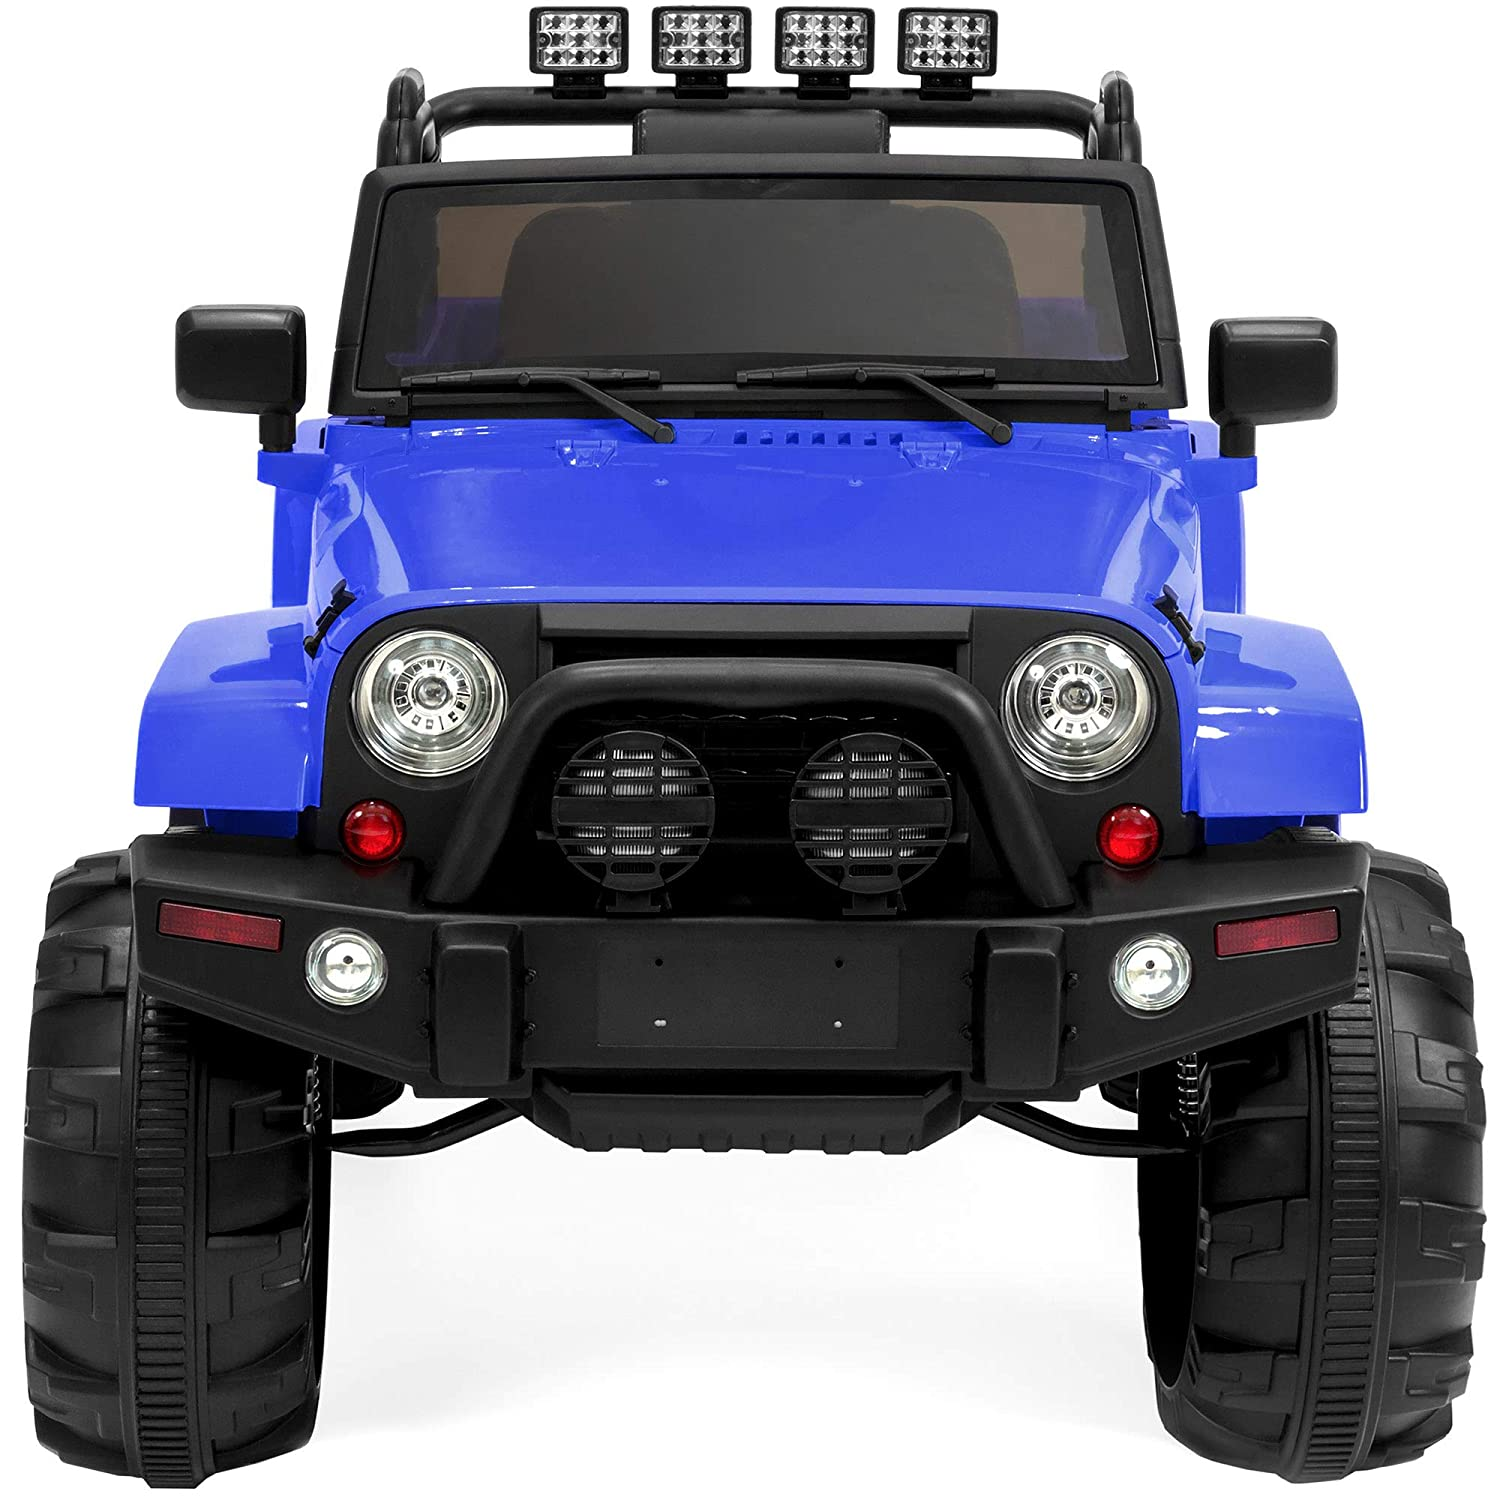 Best Choice Products 12v Kids Ride On Truck Car W Wiring Harness Alligator Fence Remote Control 3 Speeds Spring Suspension Led Lights Aux Blue Toys Games